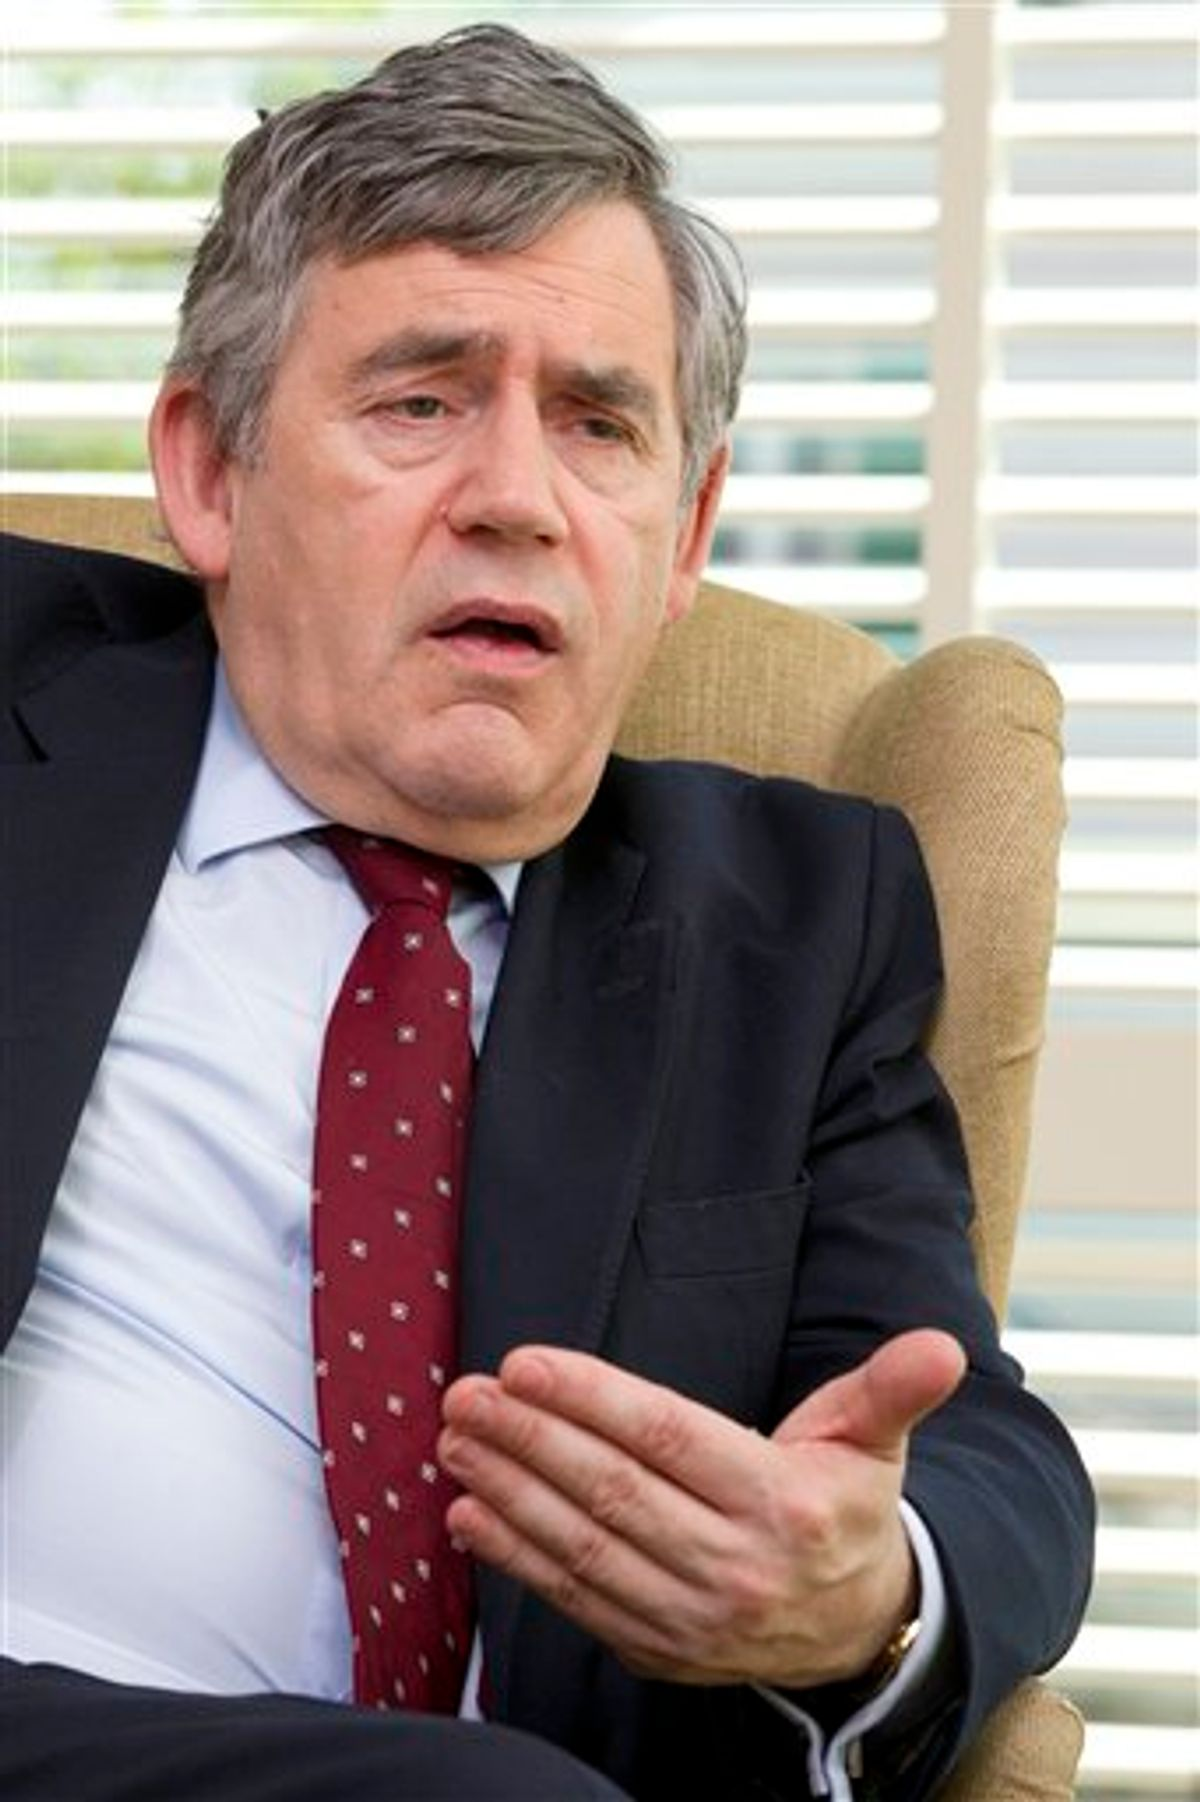 FILE - This is a Tuesday, April 5, 2011 file photo of former British Prime Minister Gordon Brown answers question during an interview with The  Associated Press in  Geneva, Switzerland.   British media say that former Prime Minister Gordon Brown had his personal information targeted by elements of Rupert Murdoch's media empire. (AP Photo/Salvatore Di Nolfi, File) (AP)